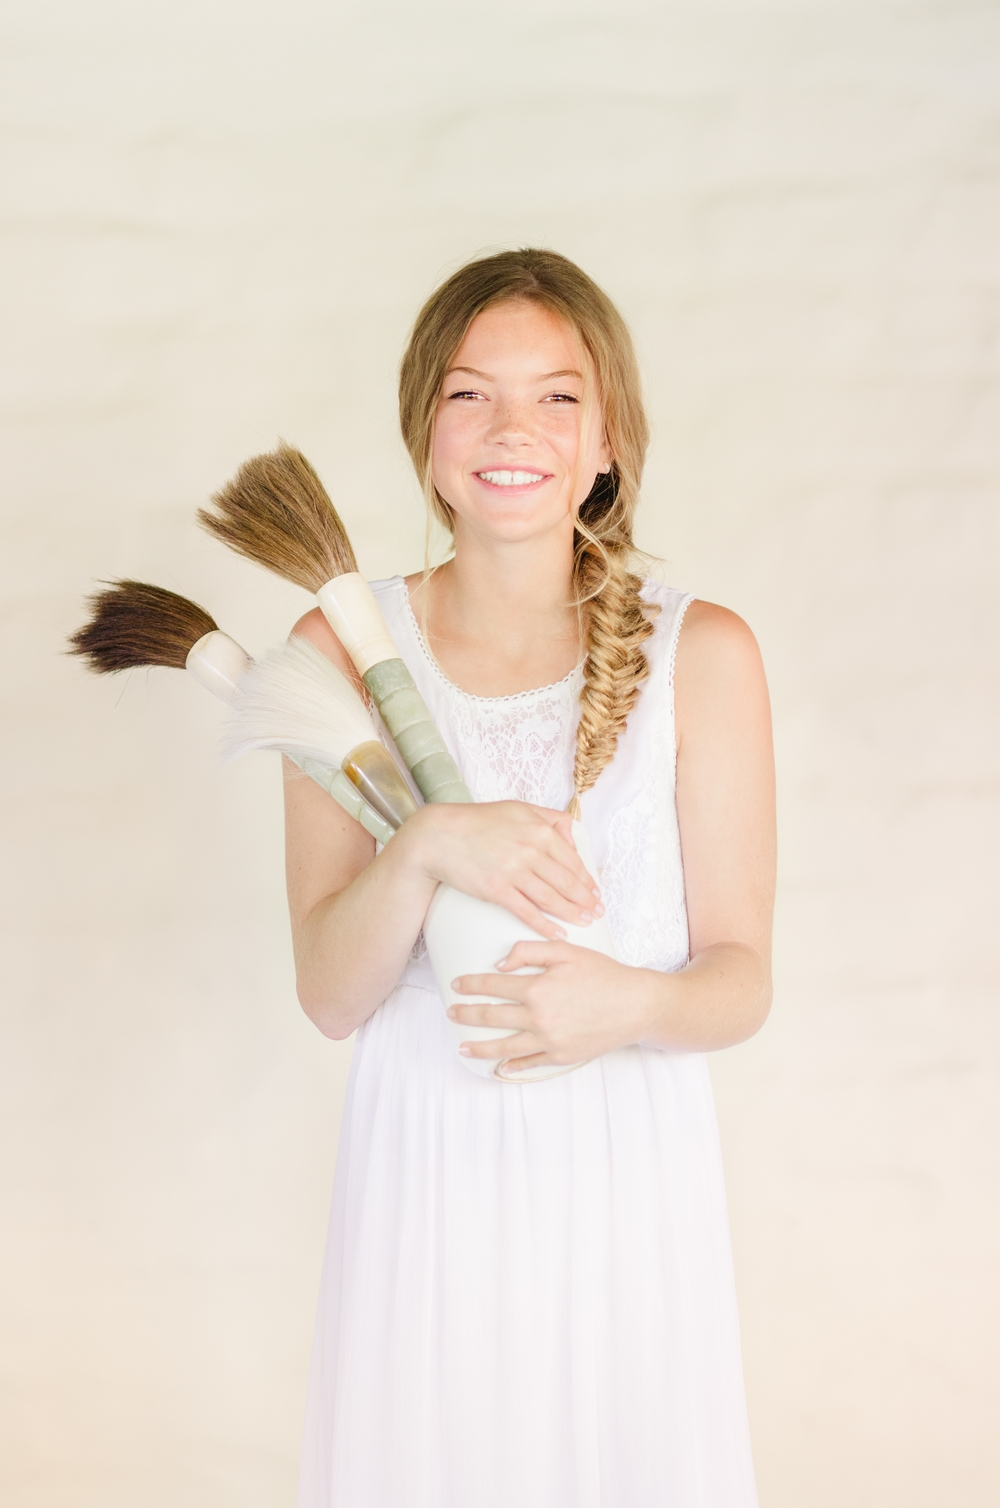 Many Brushes: Thoughts on Beauty by a Mother as Featured in Cottage Hill's The Pioneer Issue